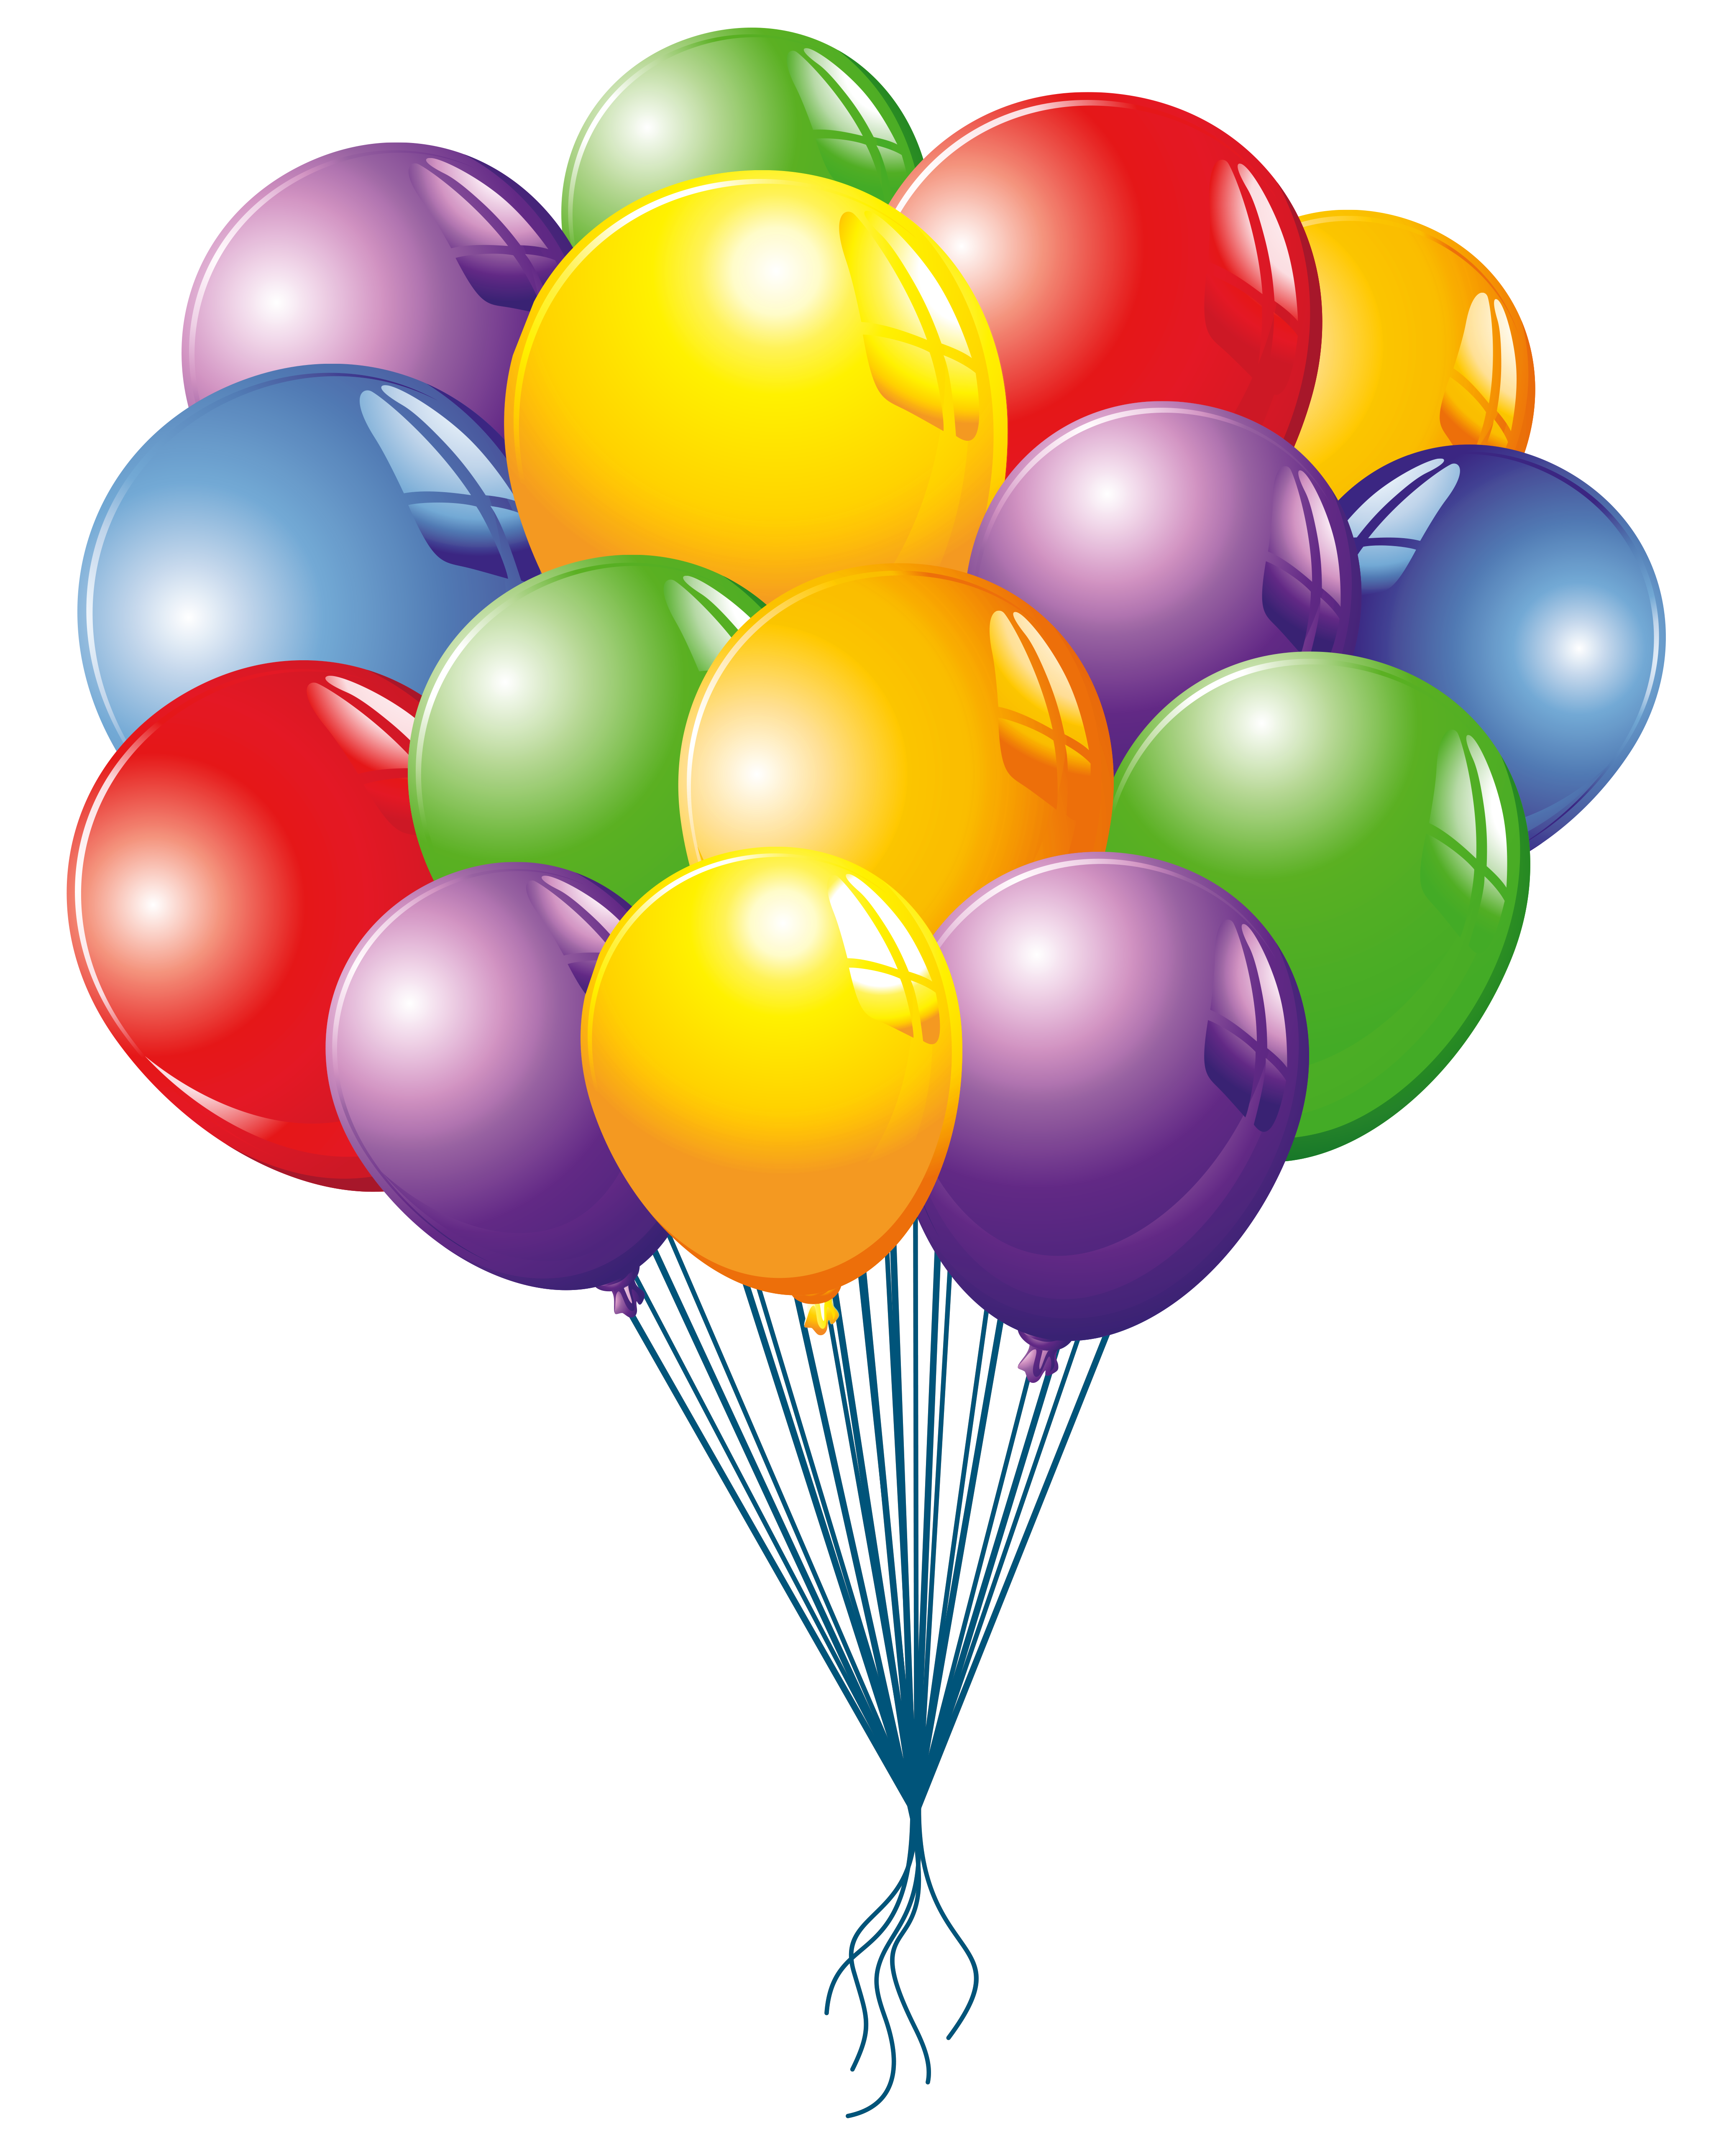 Balloons clipart images logo more